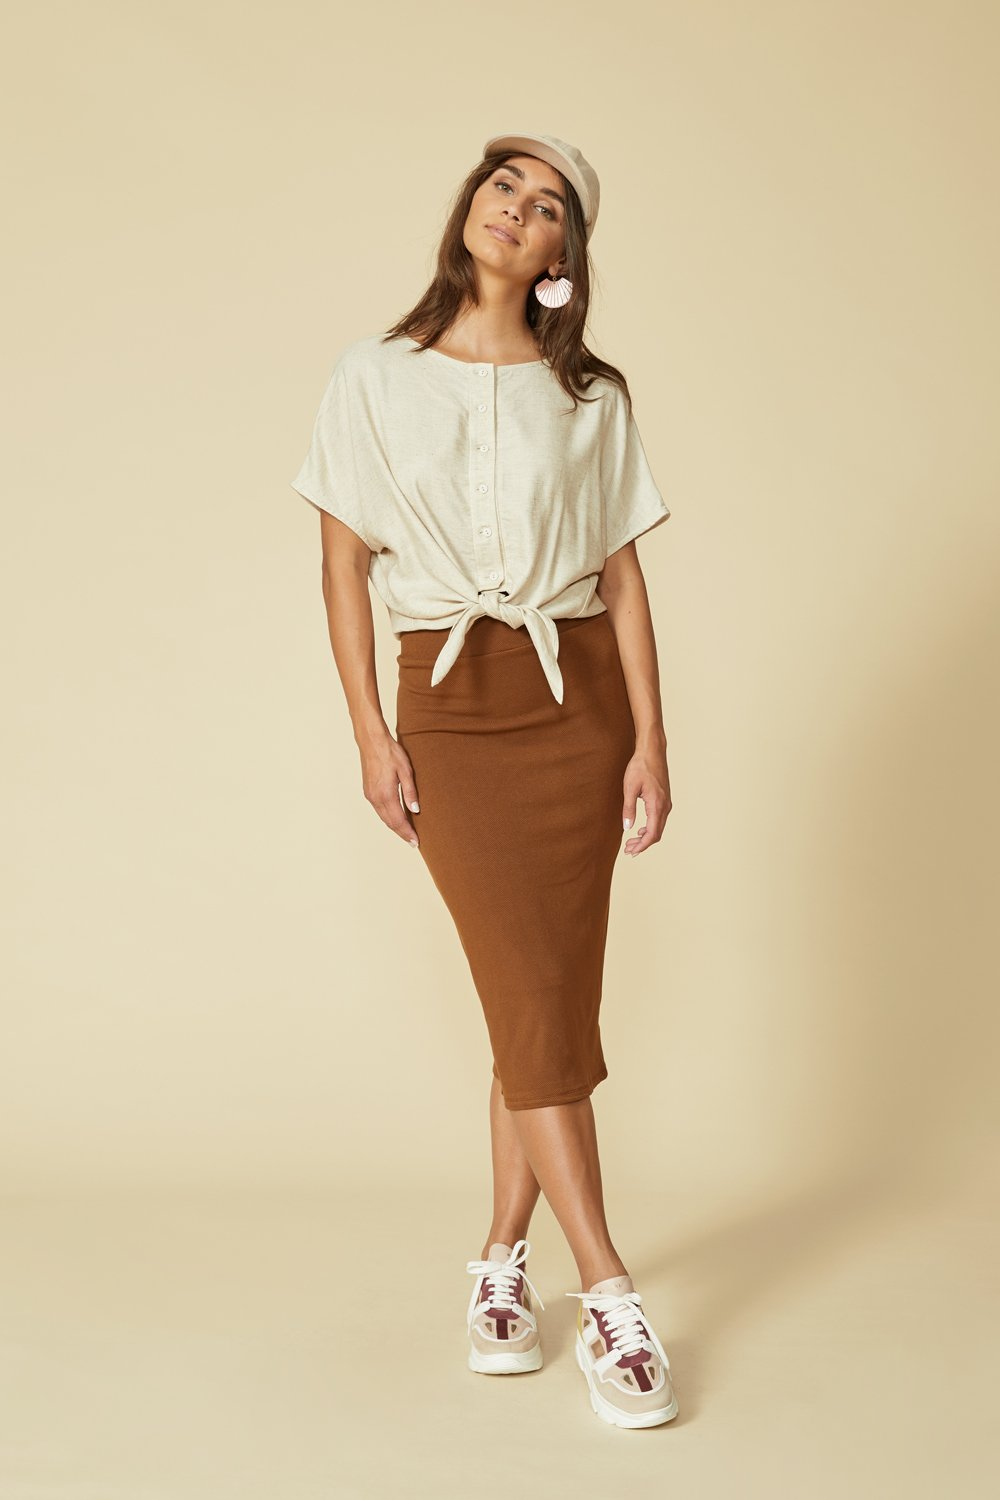 Balance skirt by Cokluch in Tobacco; warm cinnamon shade; slim fitting; high-waisted; hits below the knee; full-length front view; styled with a cream top and neutral sneakers